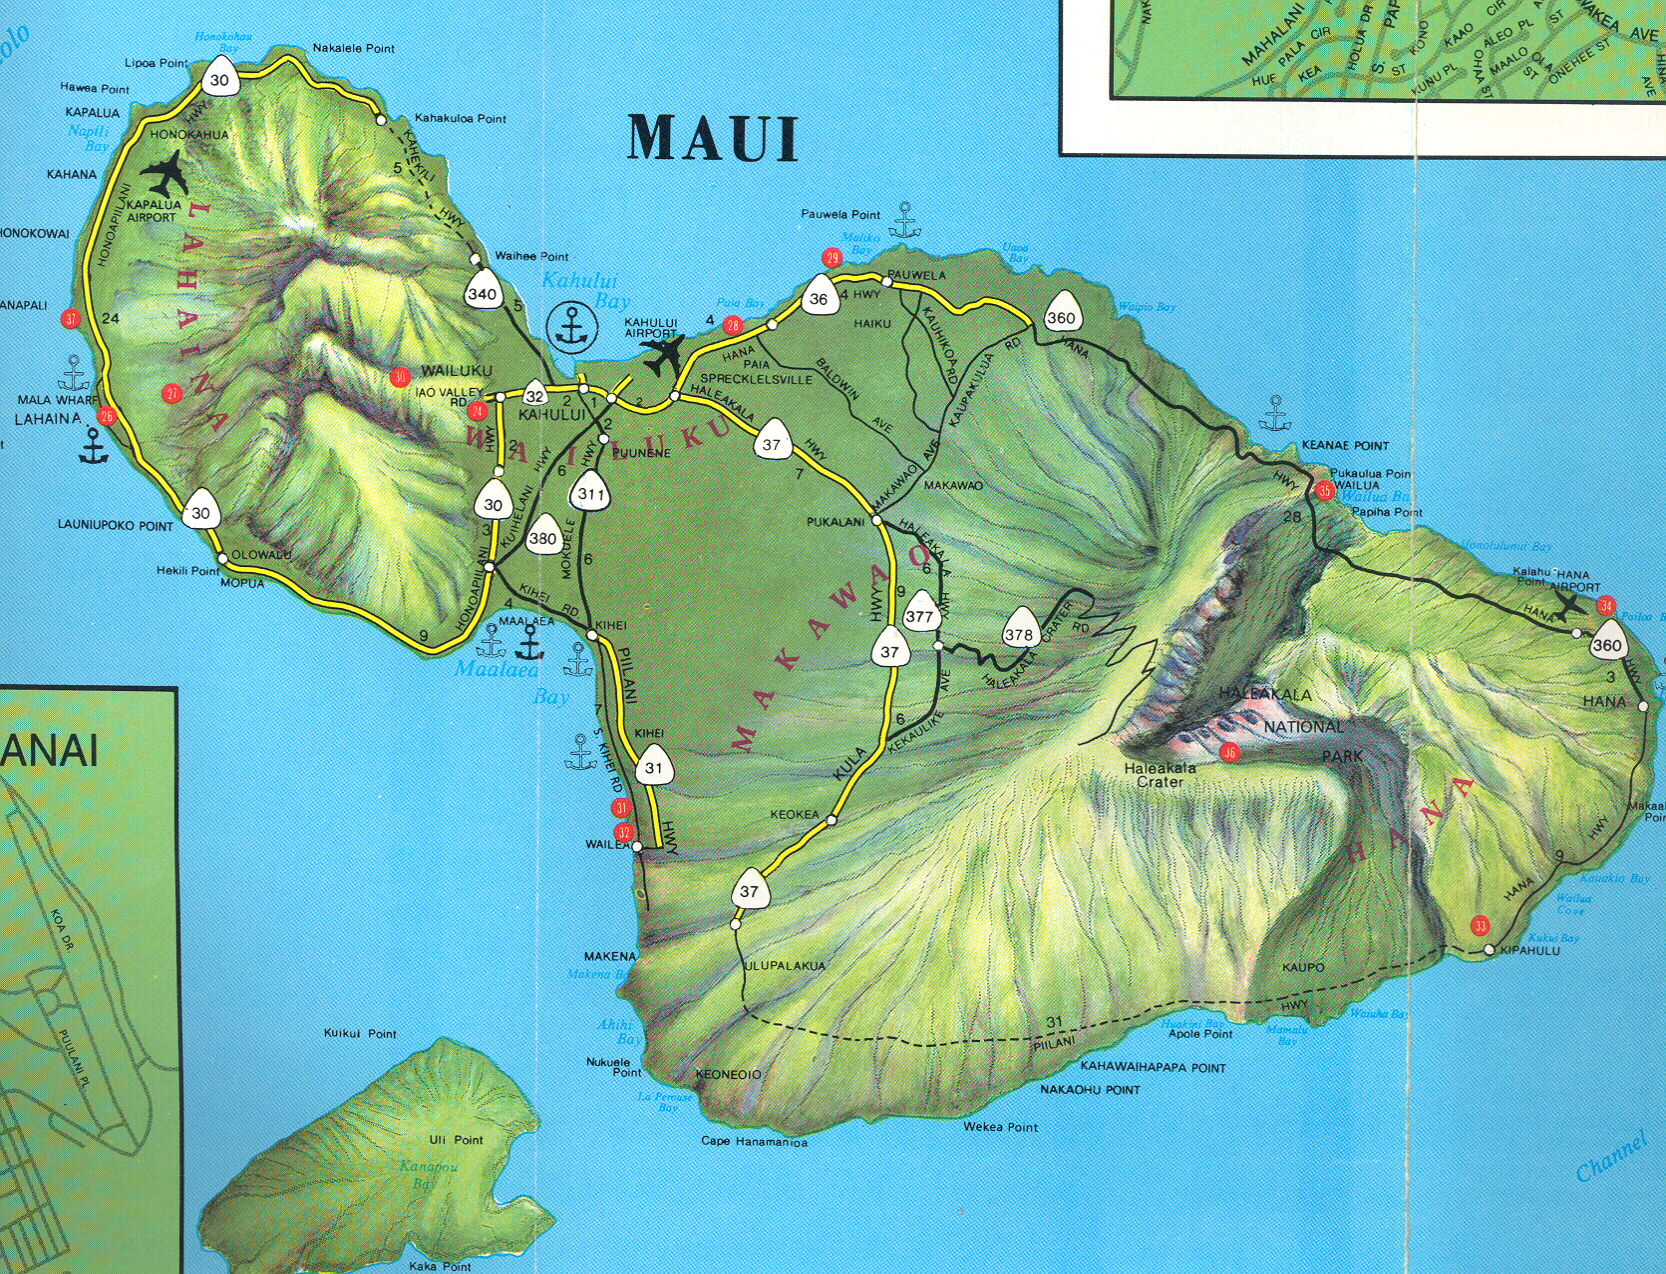 Maui Physical Map Maui HI mappery – Tourist Map Of Maui